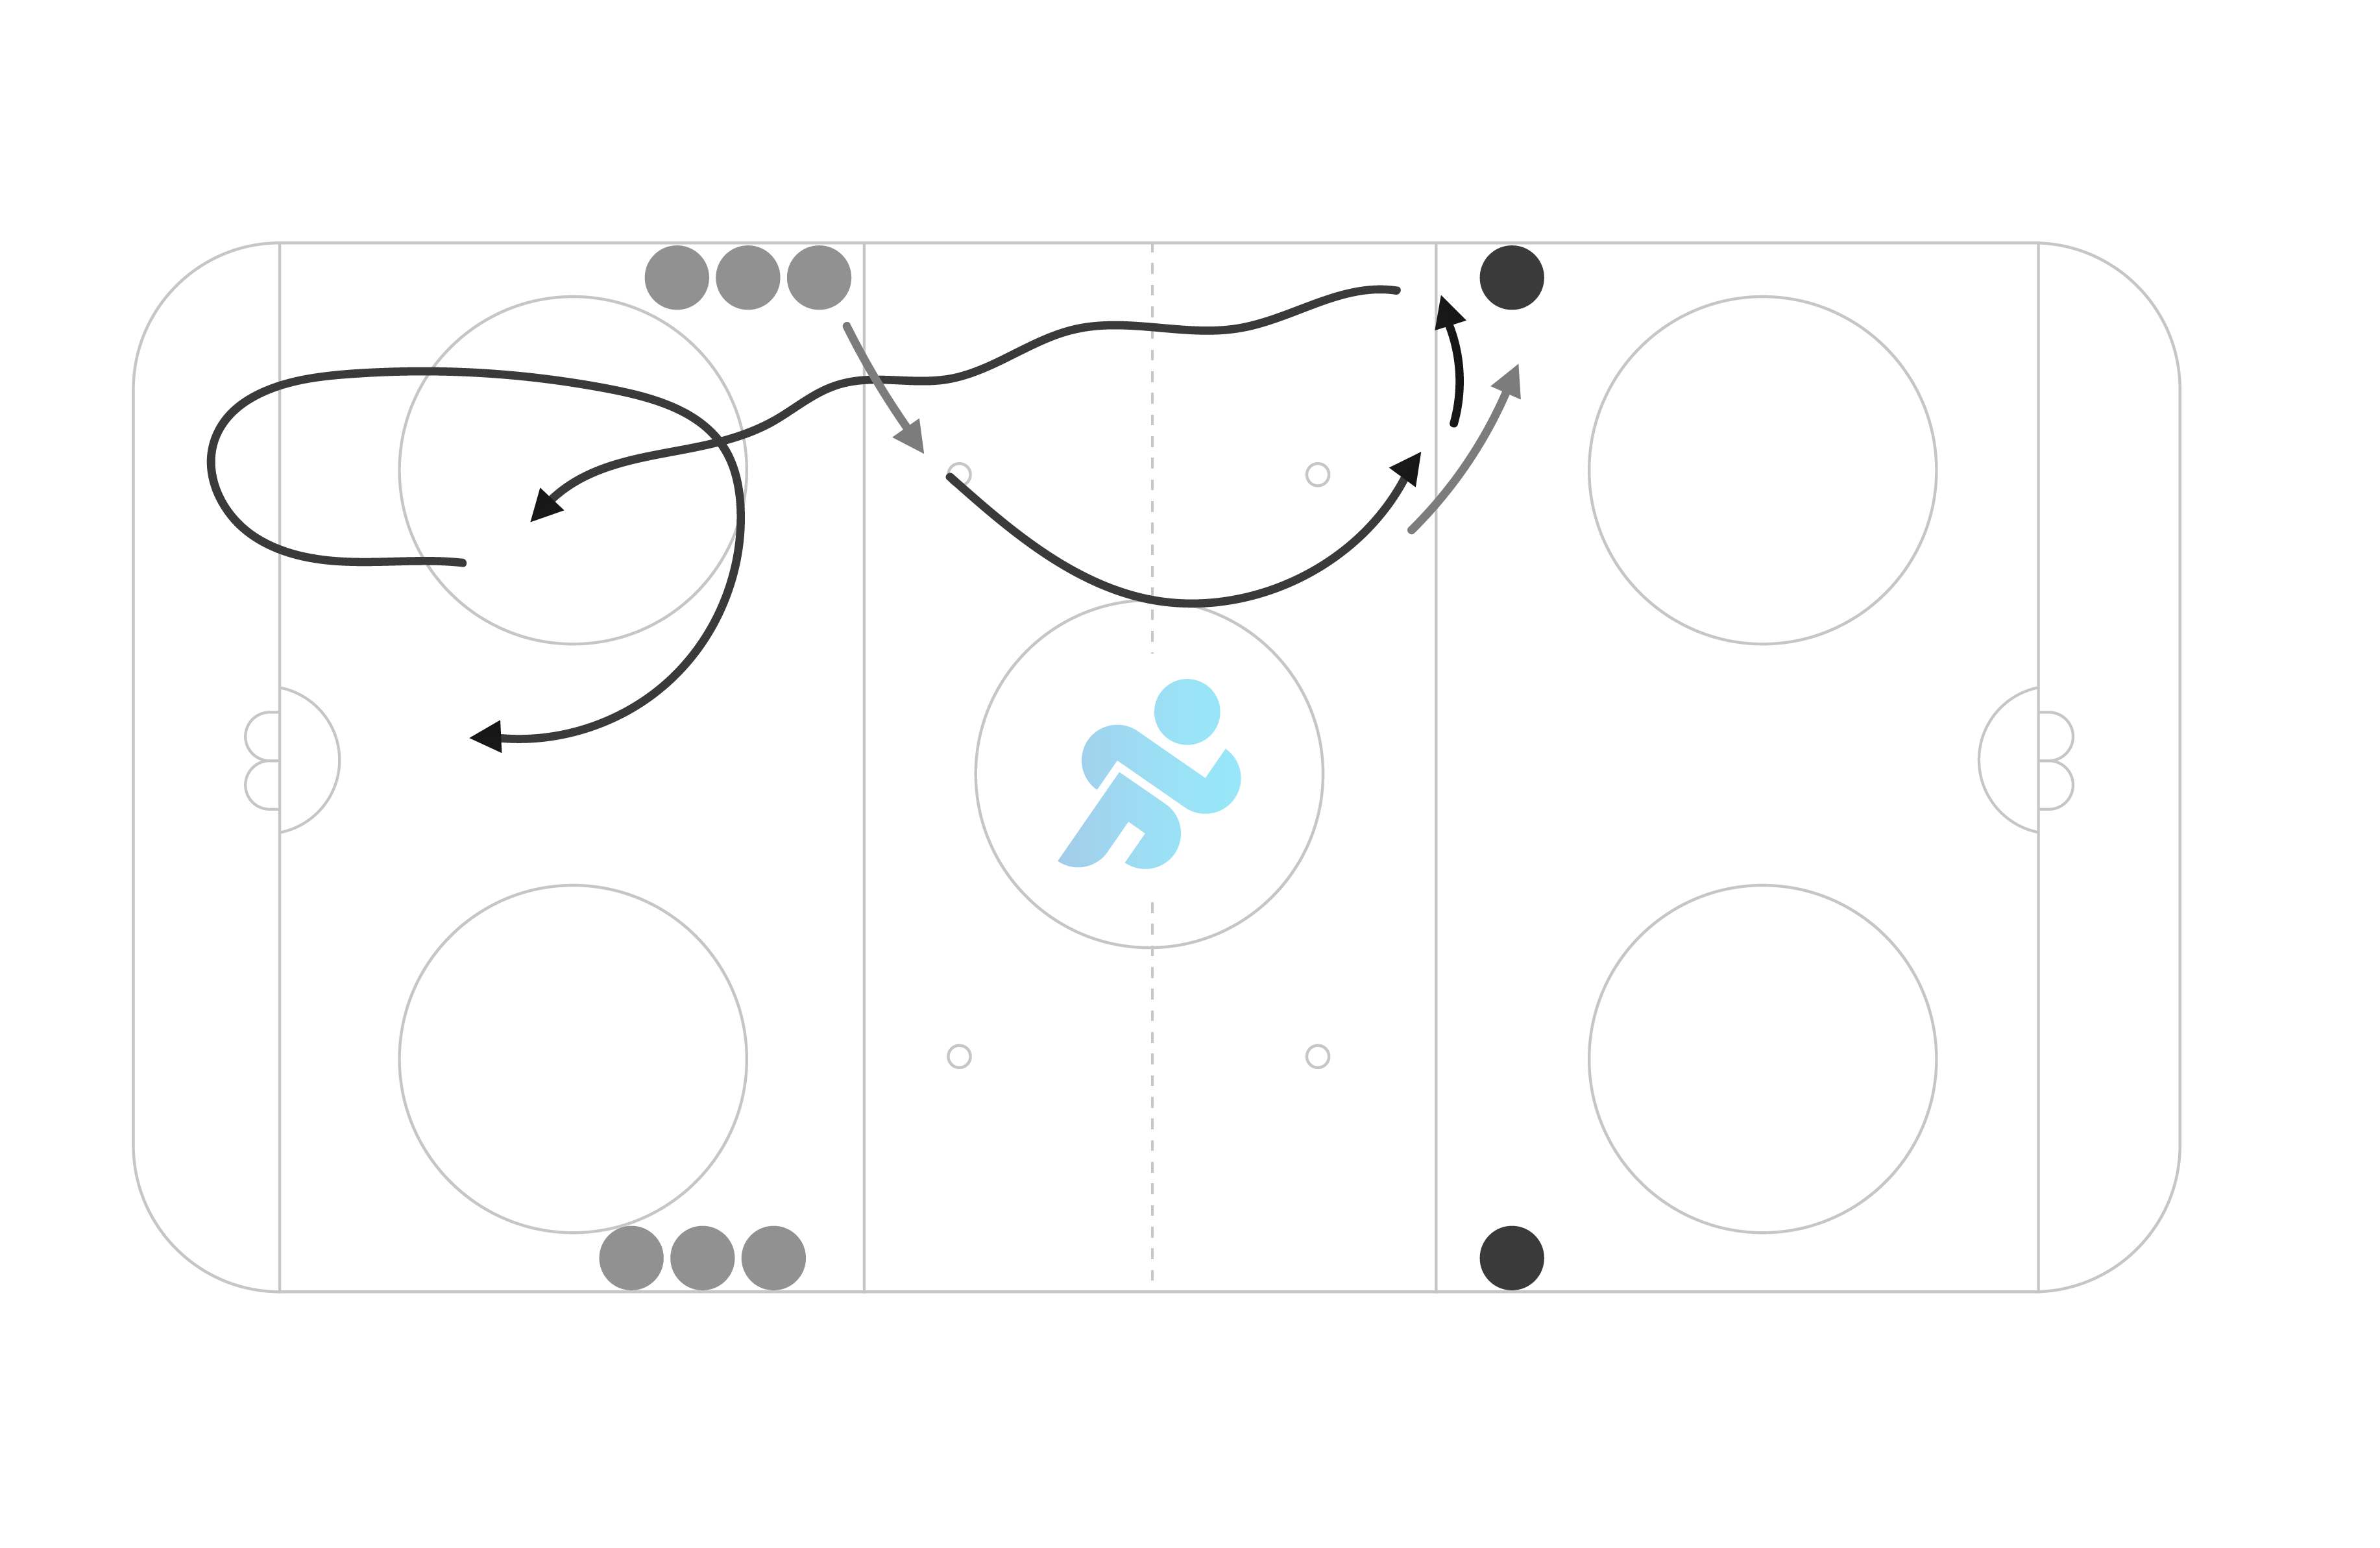 example of a collective hockey tactics